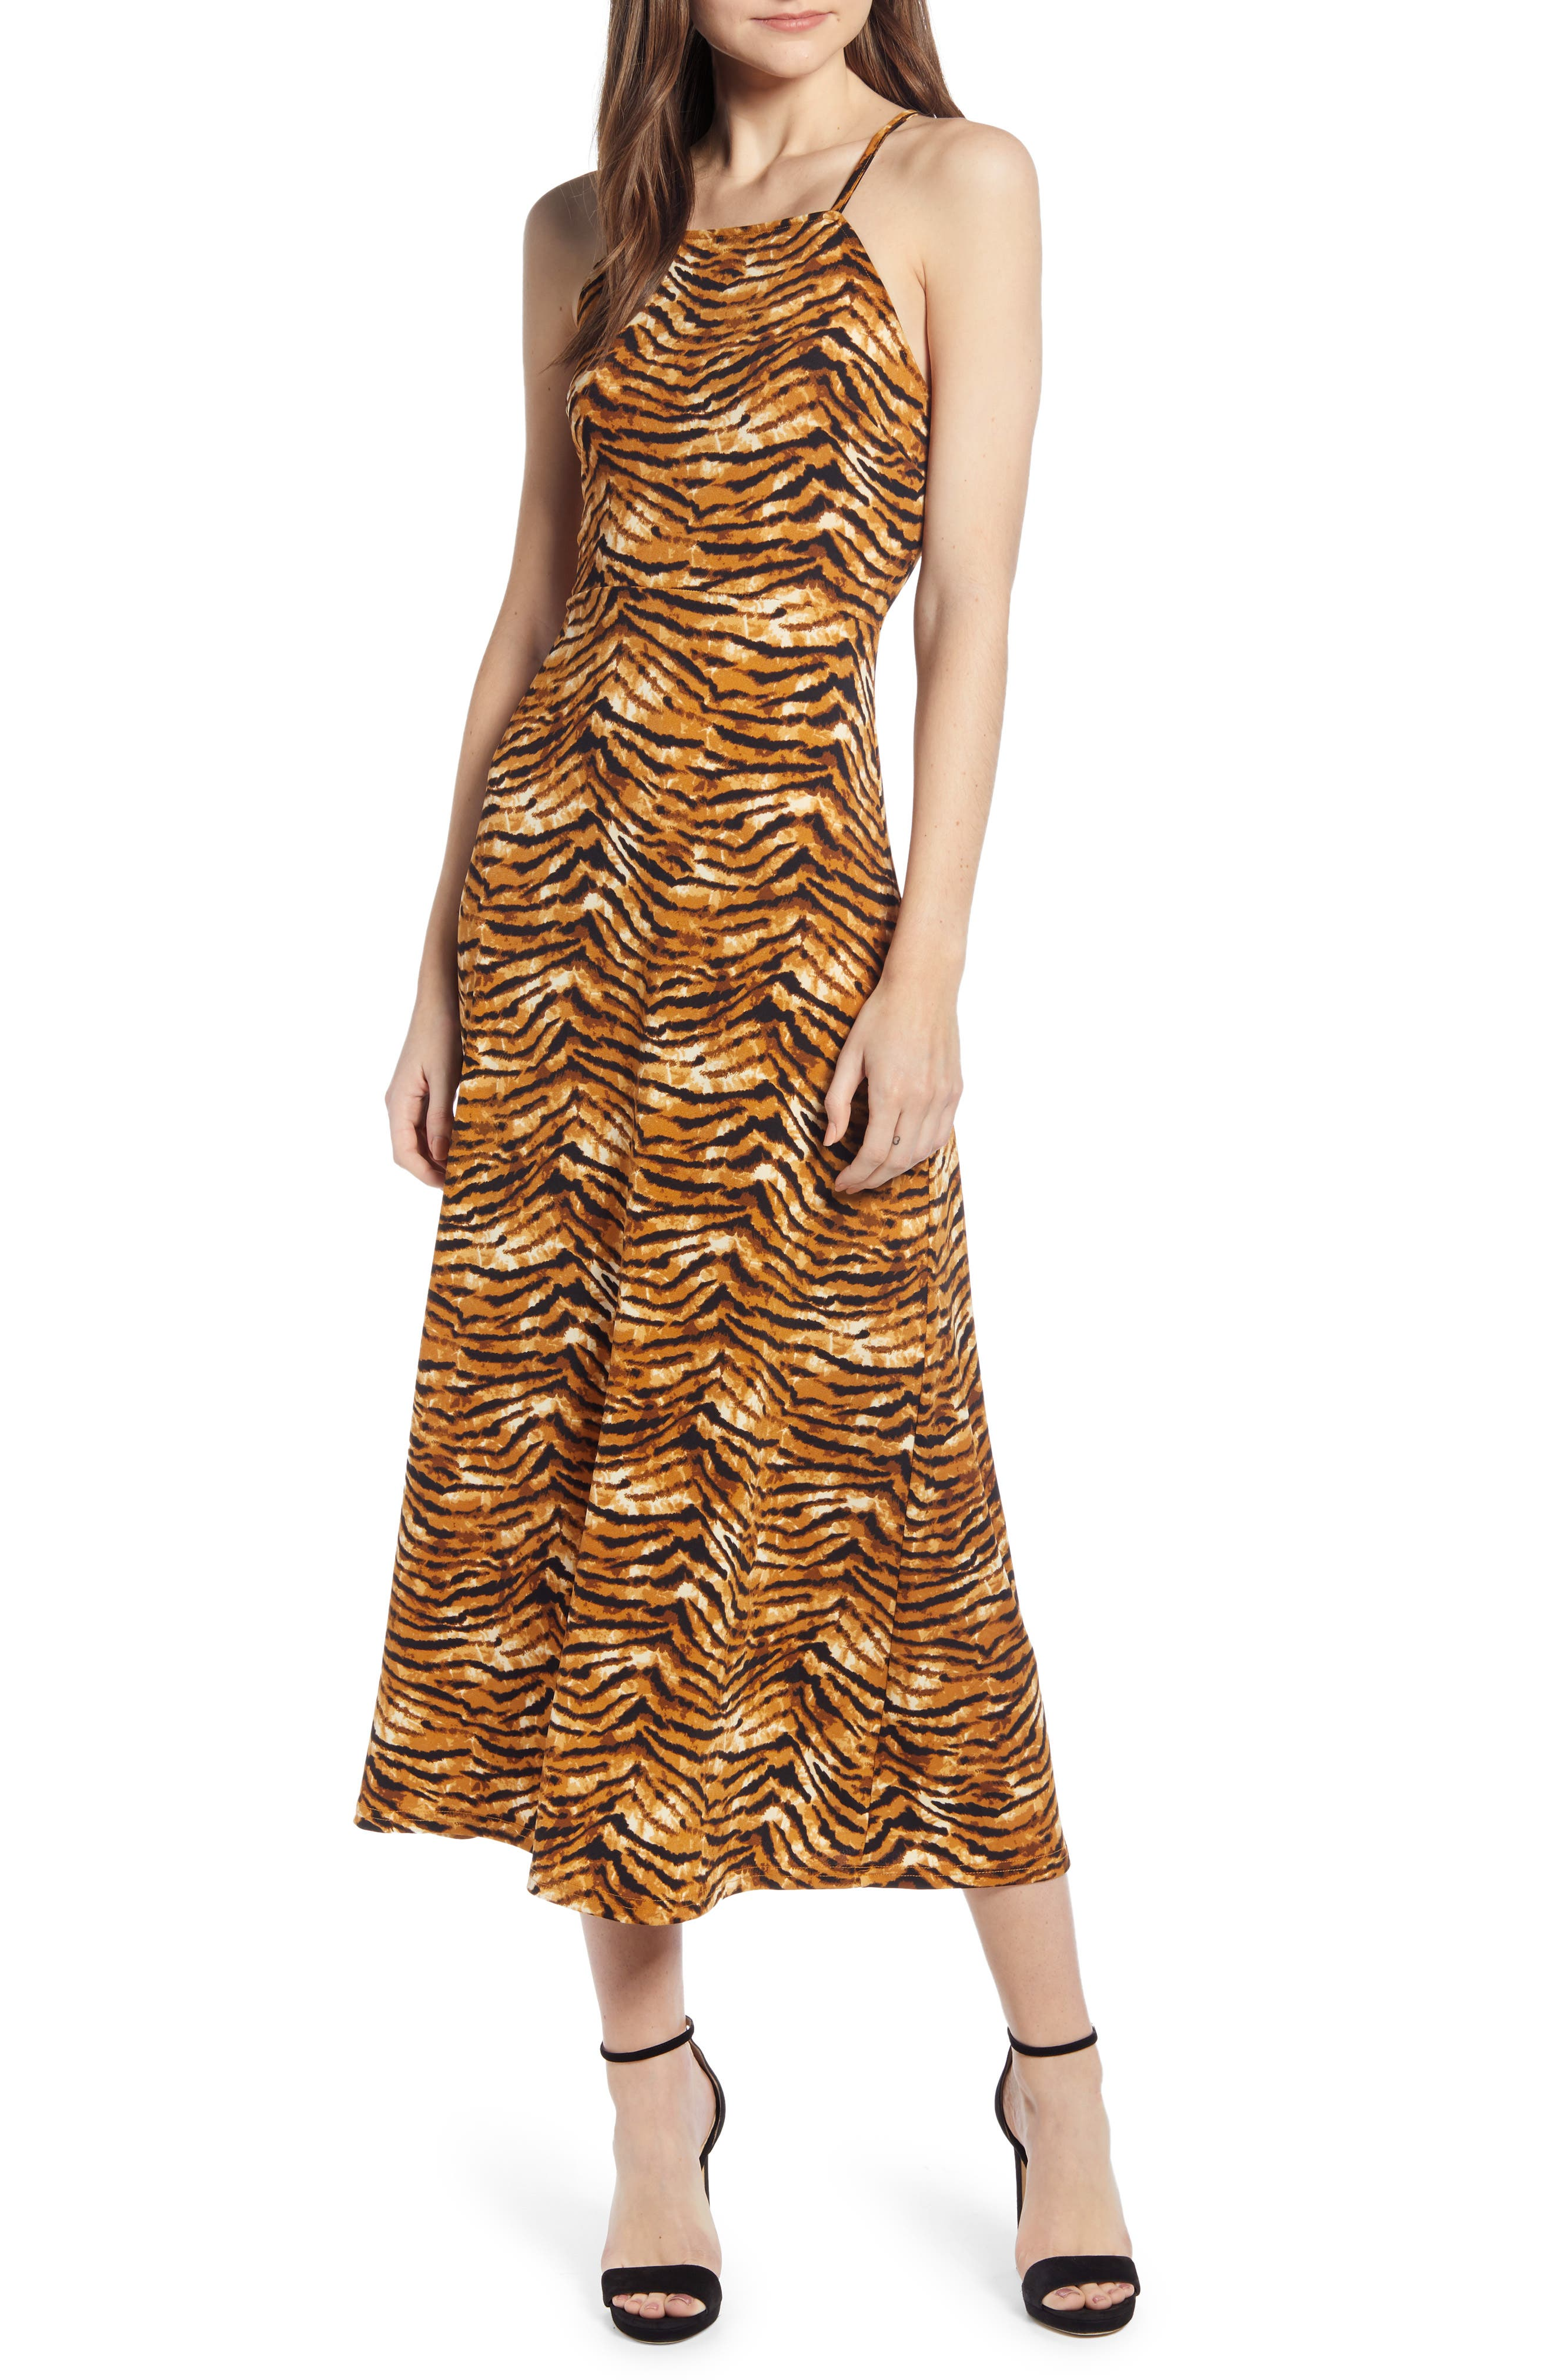 J.o.a. Cheetah Print Lace-Up Back Midi Dress, Brown